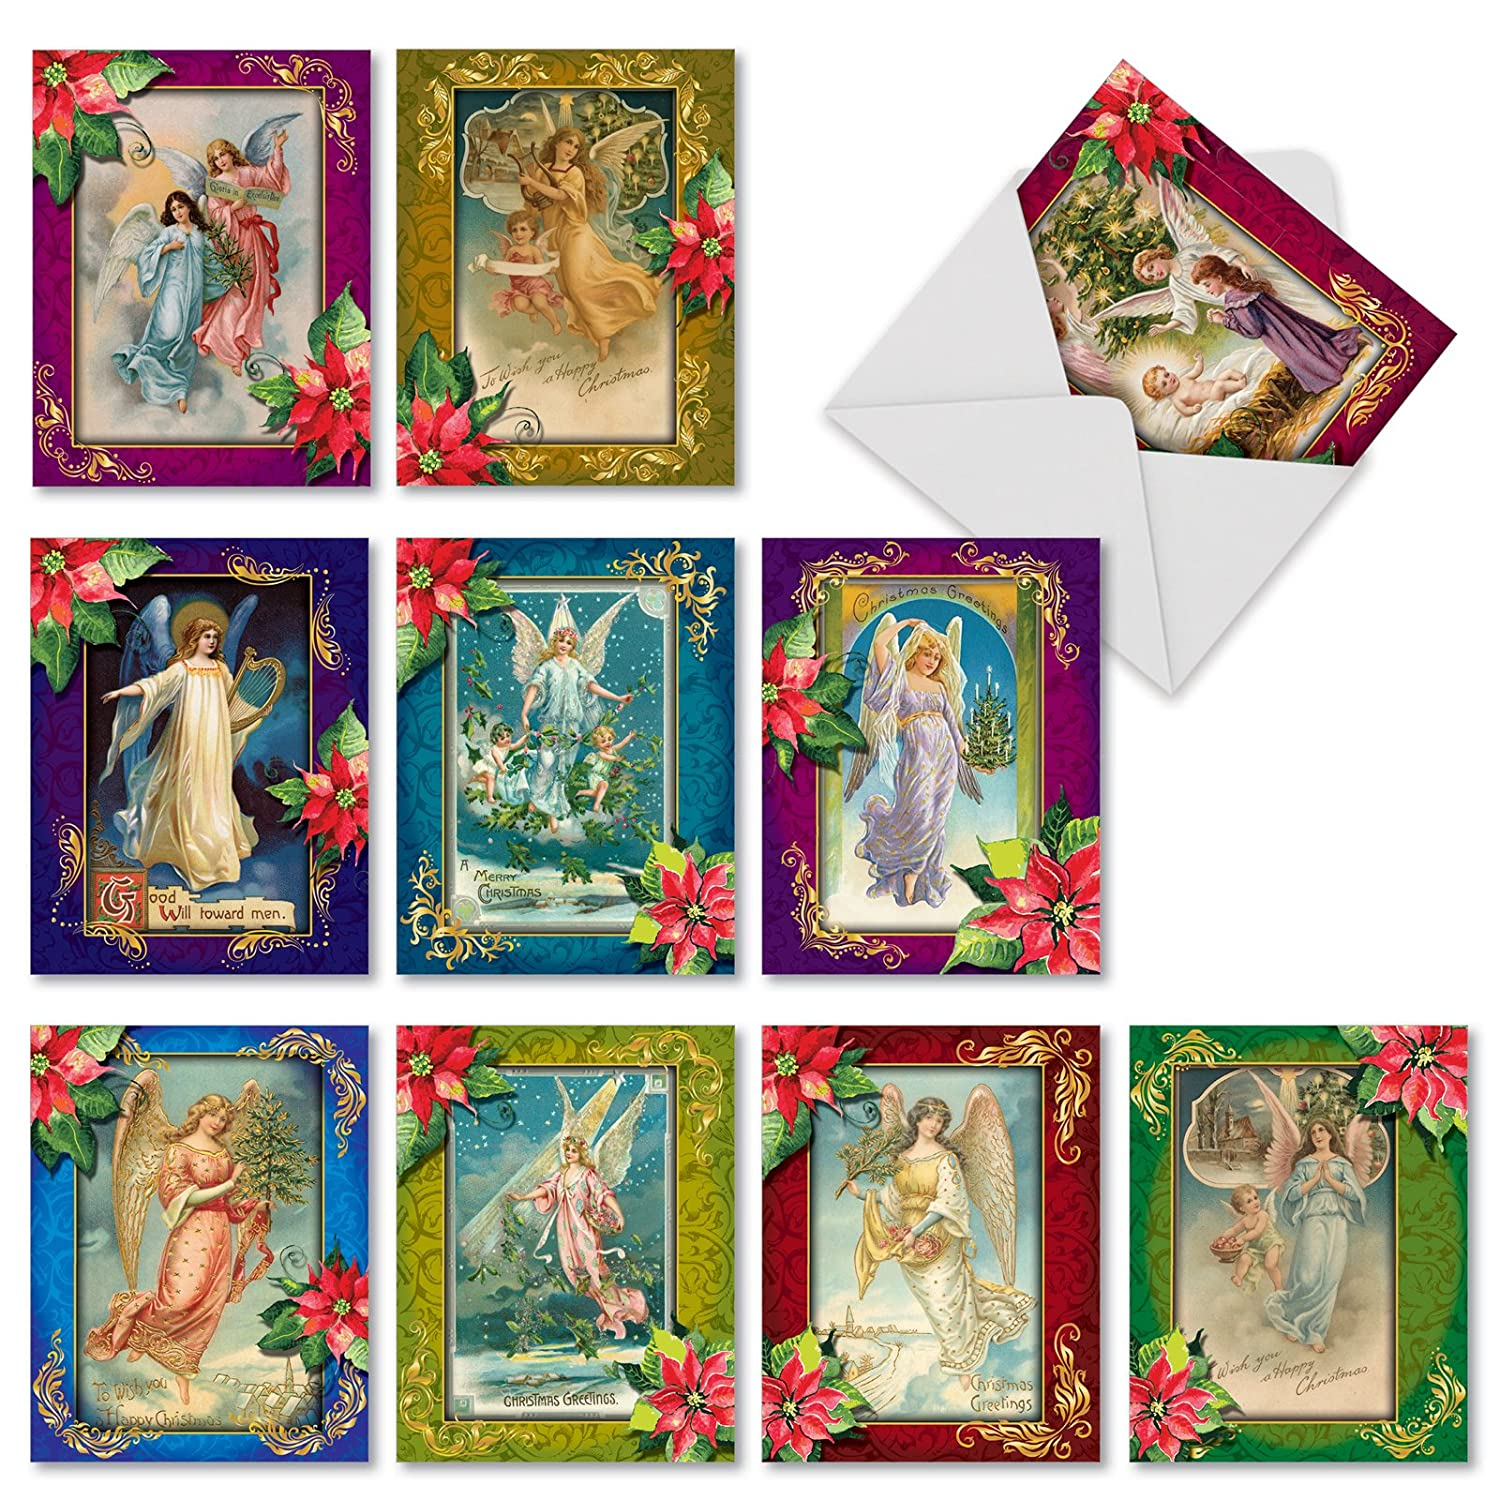 Angels Christmas Cards.Christmas Angels Blank Holiday Cards Boxed Set Of 10 Vintage Inspired Heavenly Messengers Christmas Cards 4 X 5 12 Inch Assorted Colorful Angel And